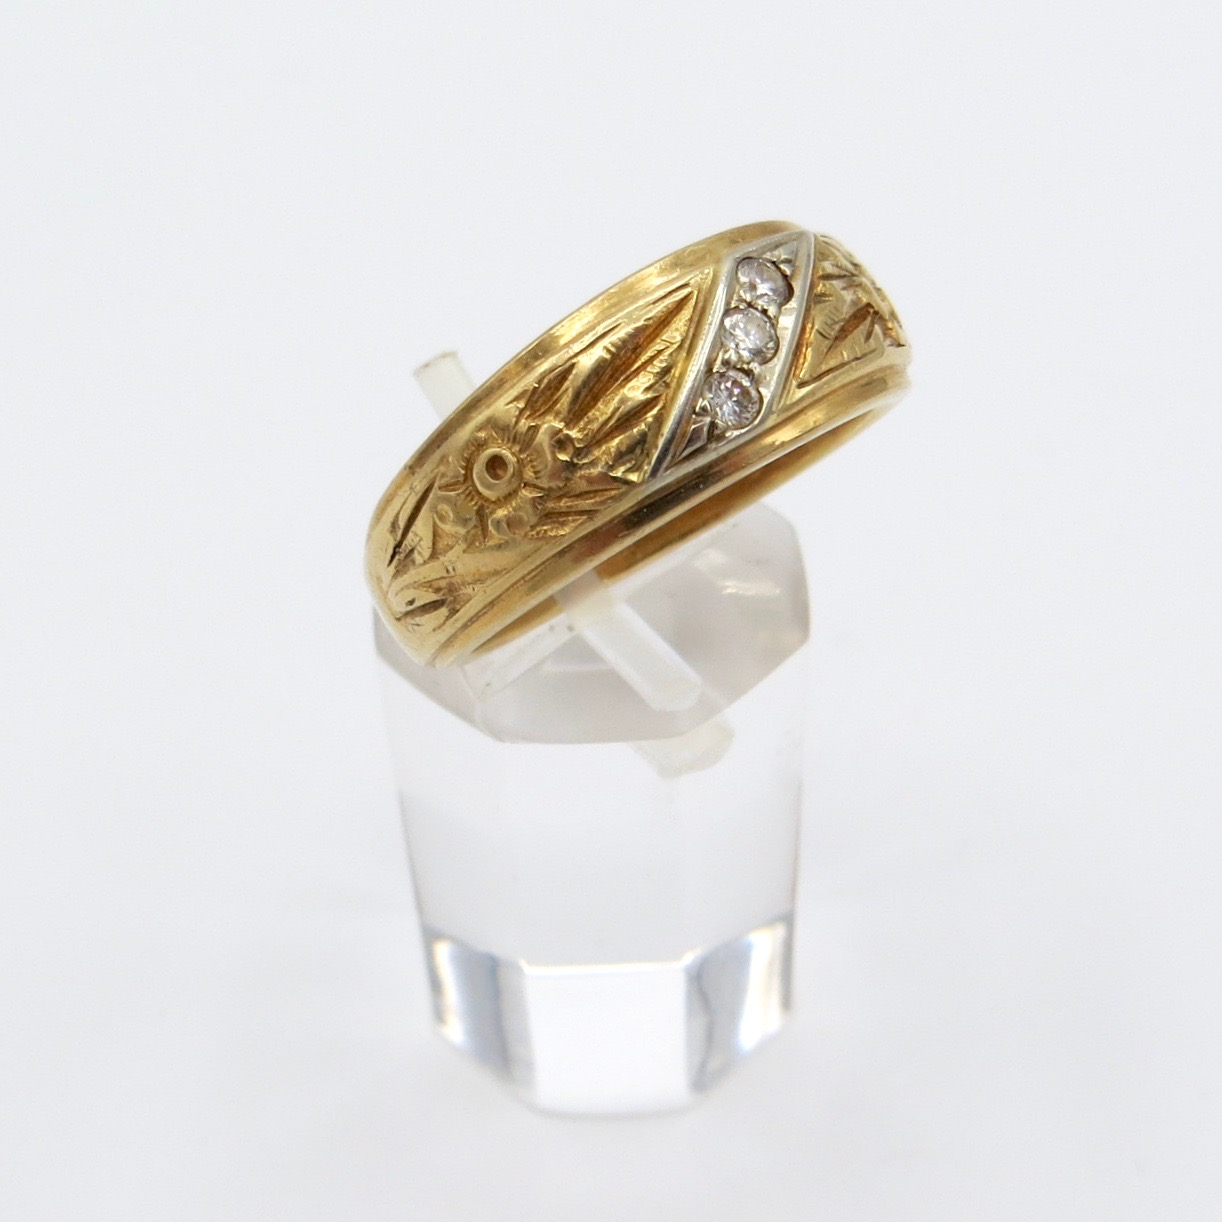 14kt Gold & Diamond Band with Floral Decoration